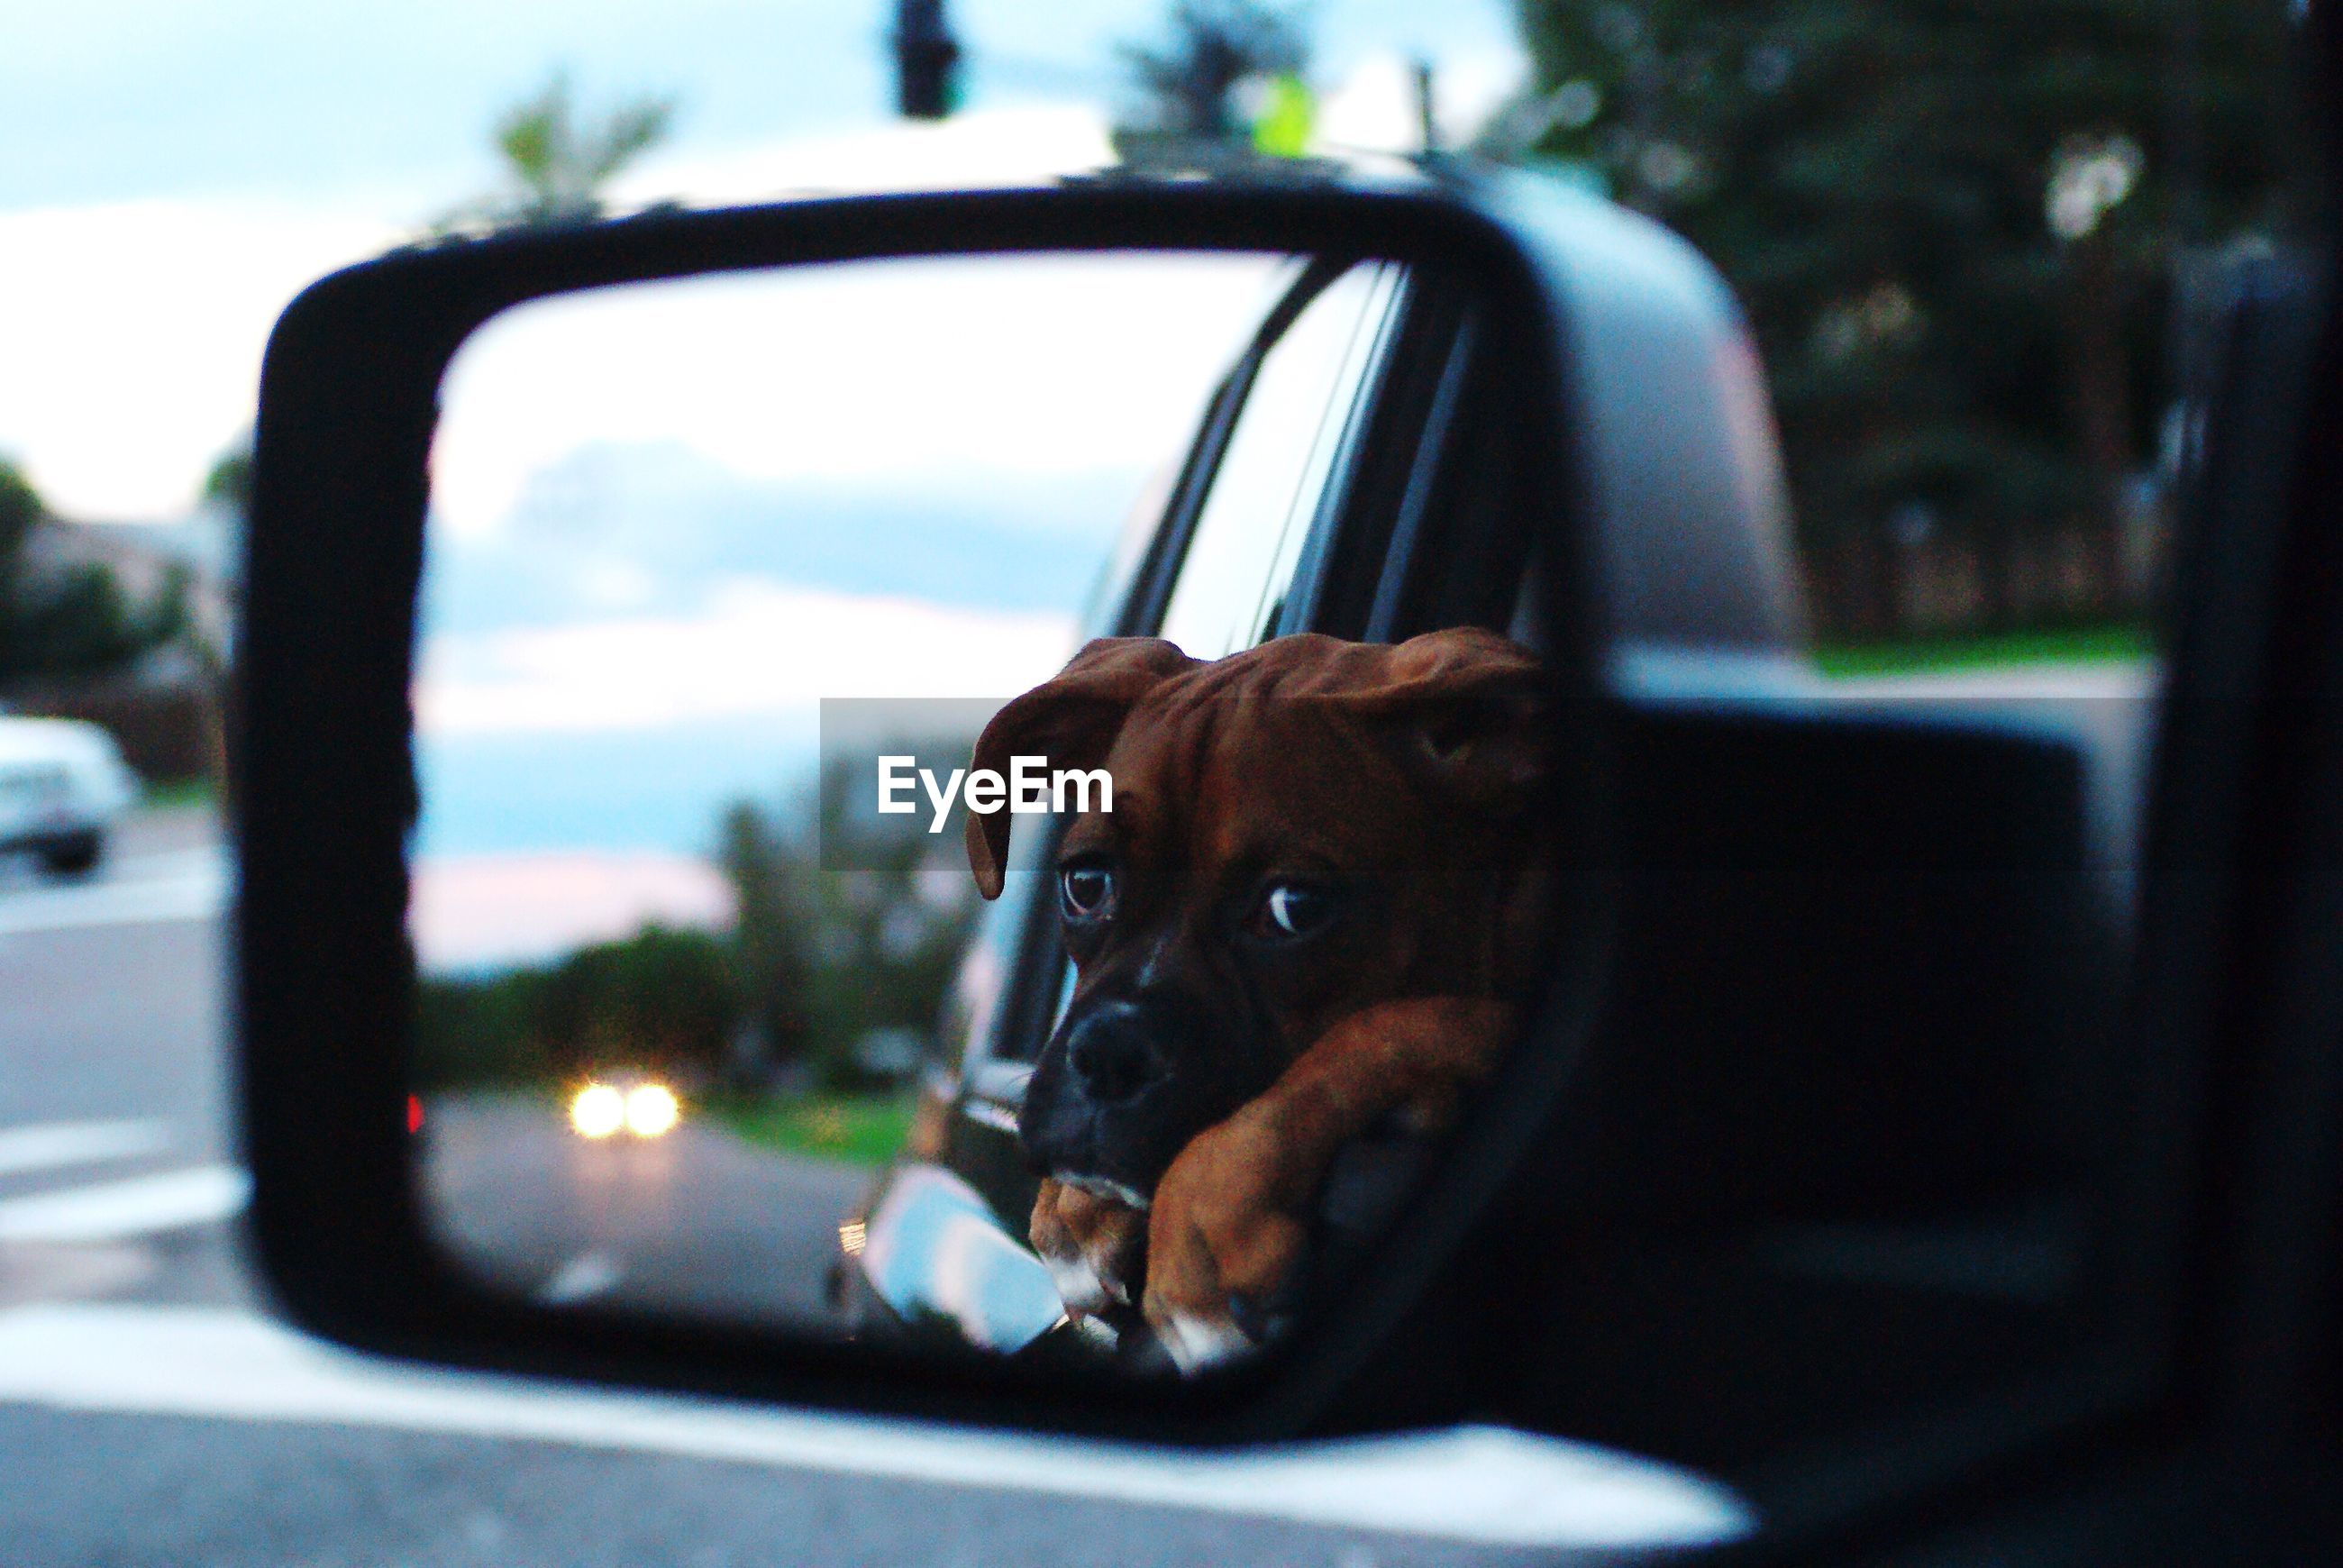 Reflection of boxer puppy on car side-view mirror